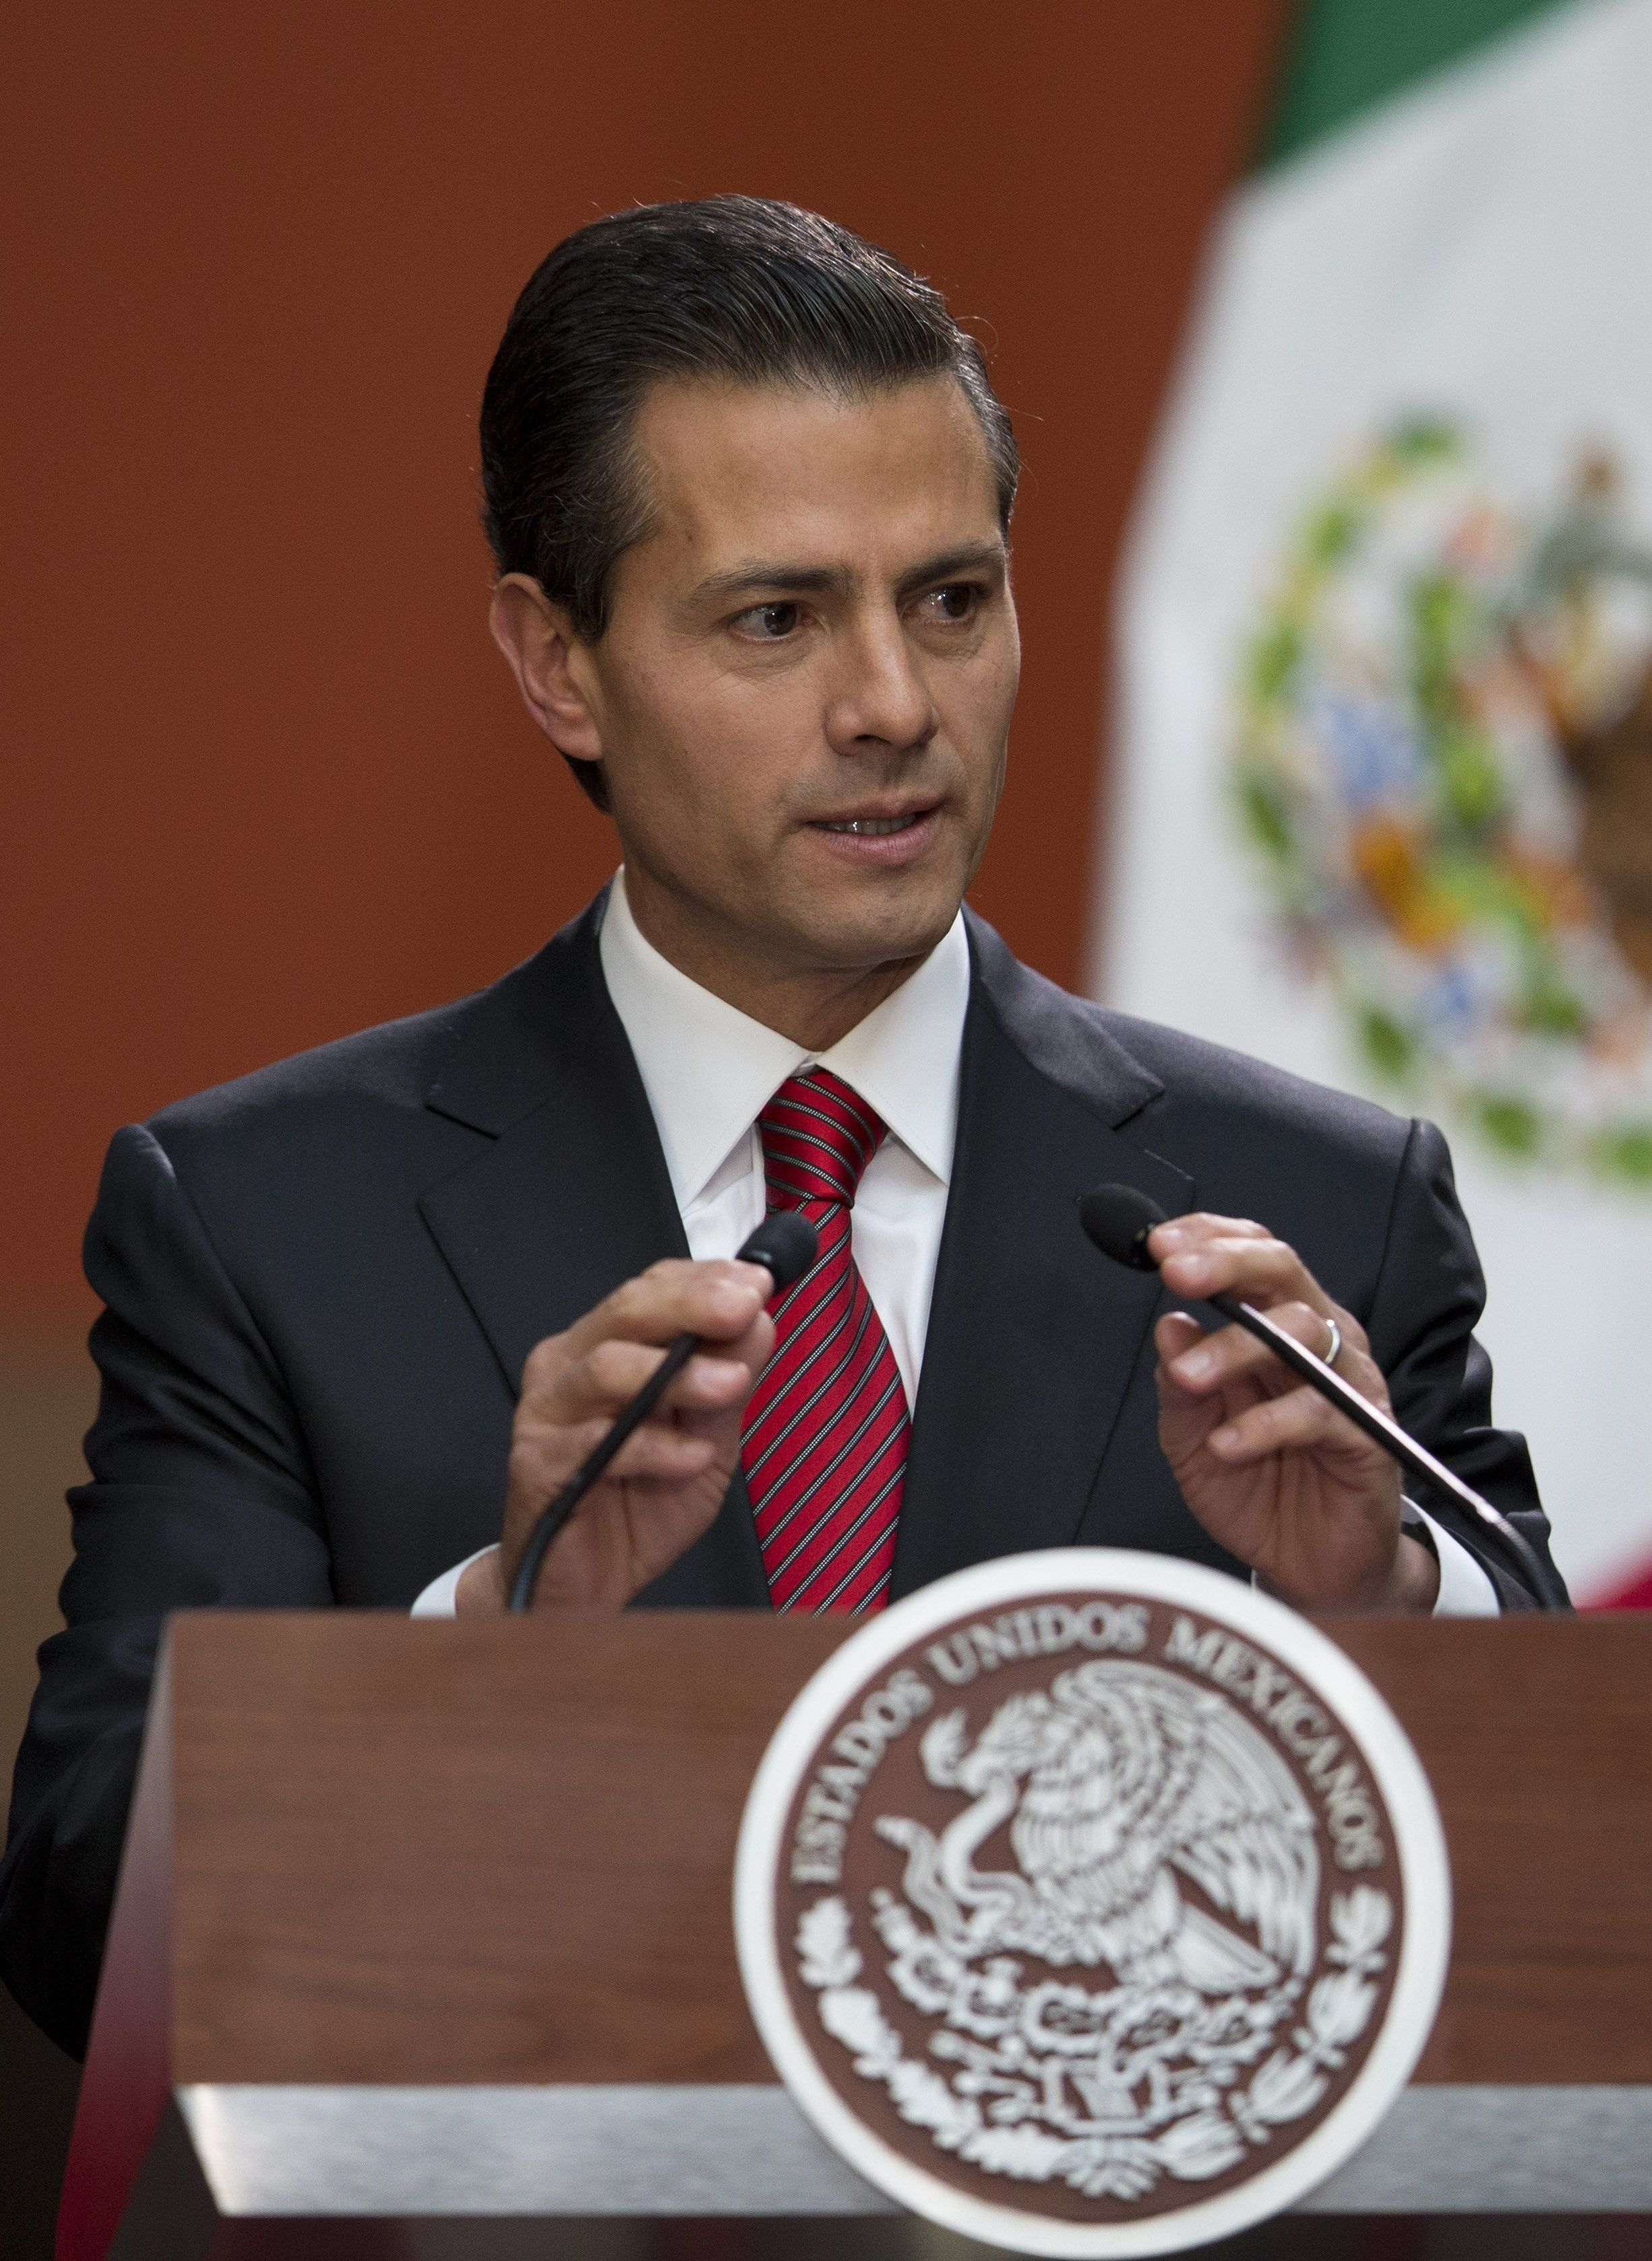 """Mexican President Enrique Pena Nieto speaks at a press conference following the capture of fugitive drug lord Joaquin """"El Chapo"""" Guzman, in Mexico City, Friday, Jan. 8, 2016. Pena announced that Guzman had been recaptured six months after escaping from a maximum security prison. (AP Photo/Rebecca Blackwell)"""